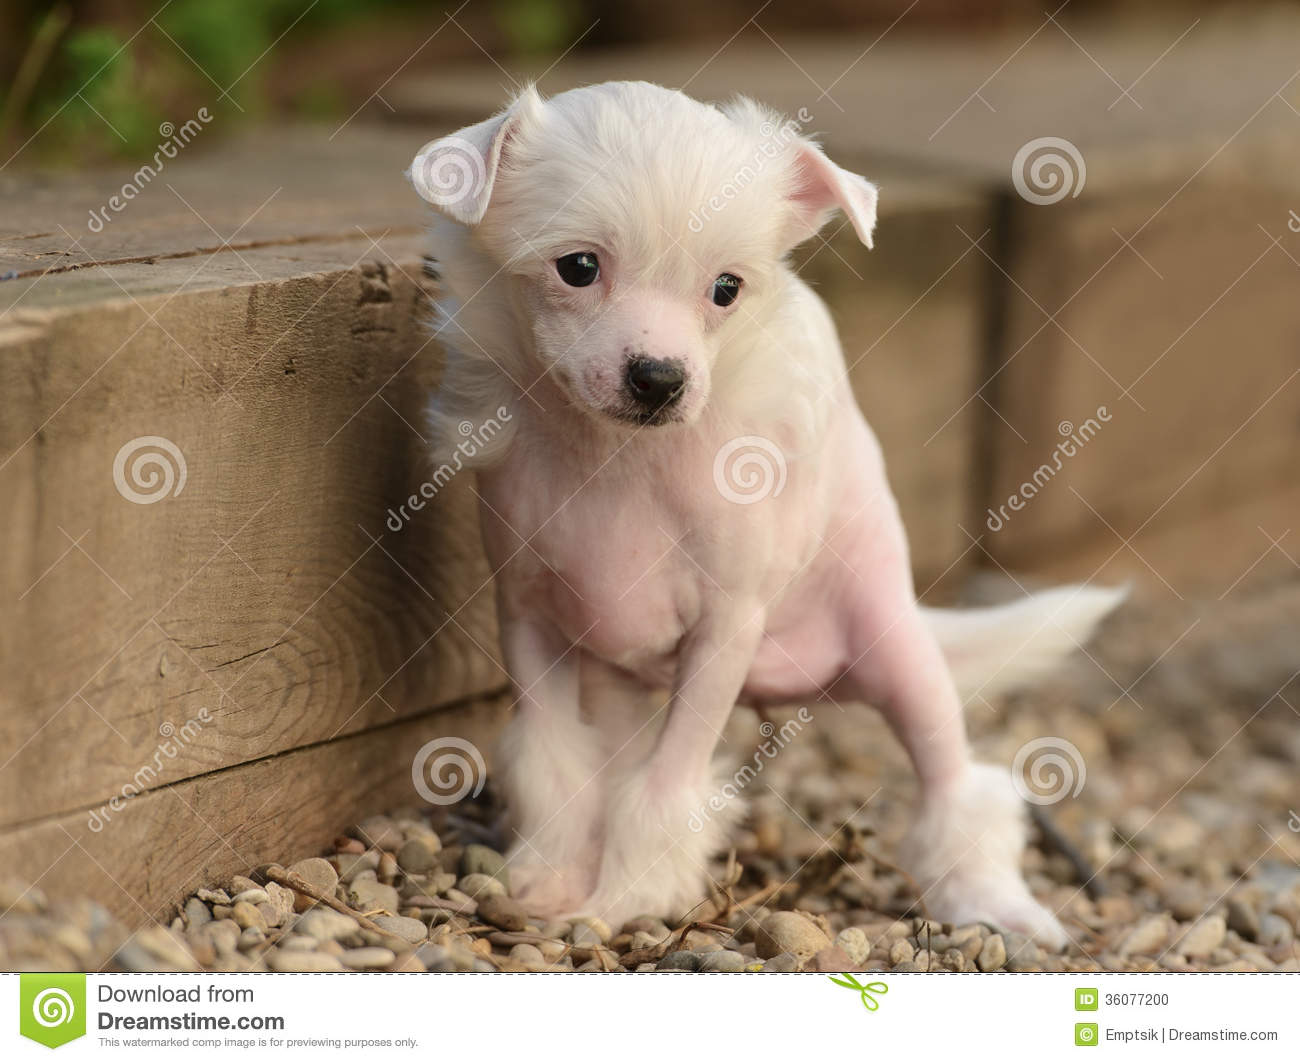 Chinese Crested Puppies Stock Photo - Image: 36077200